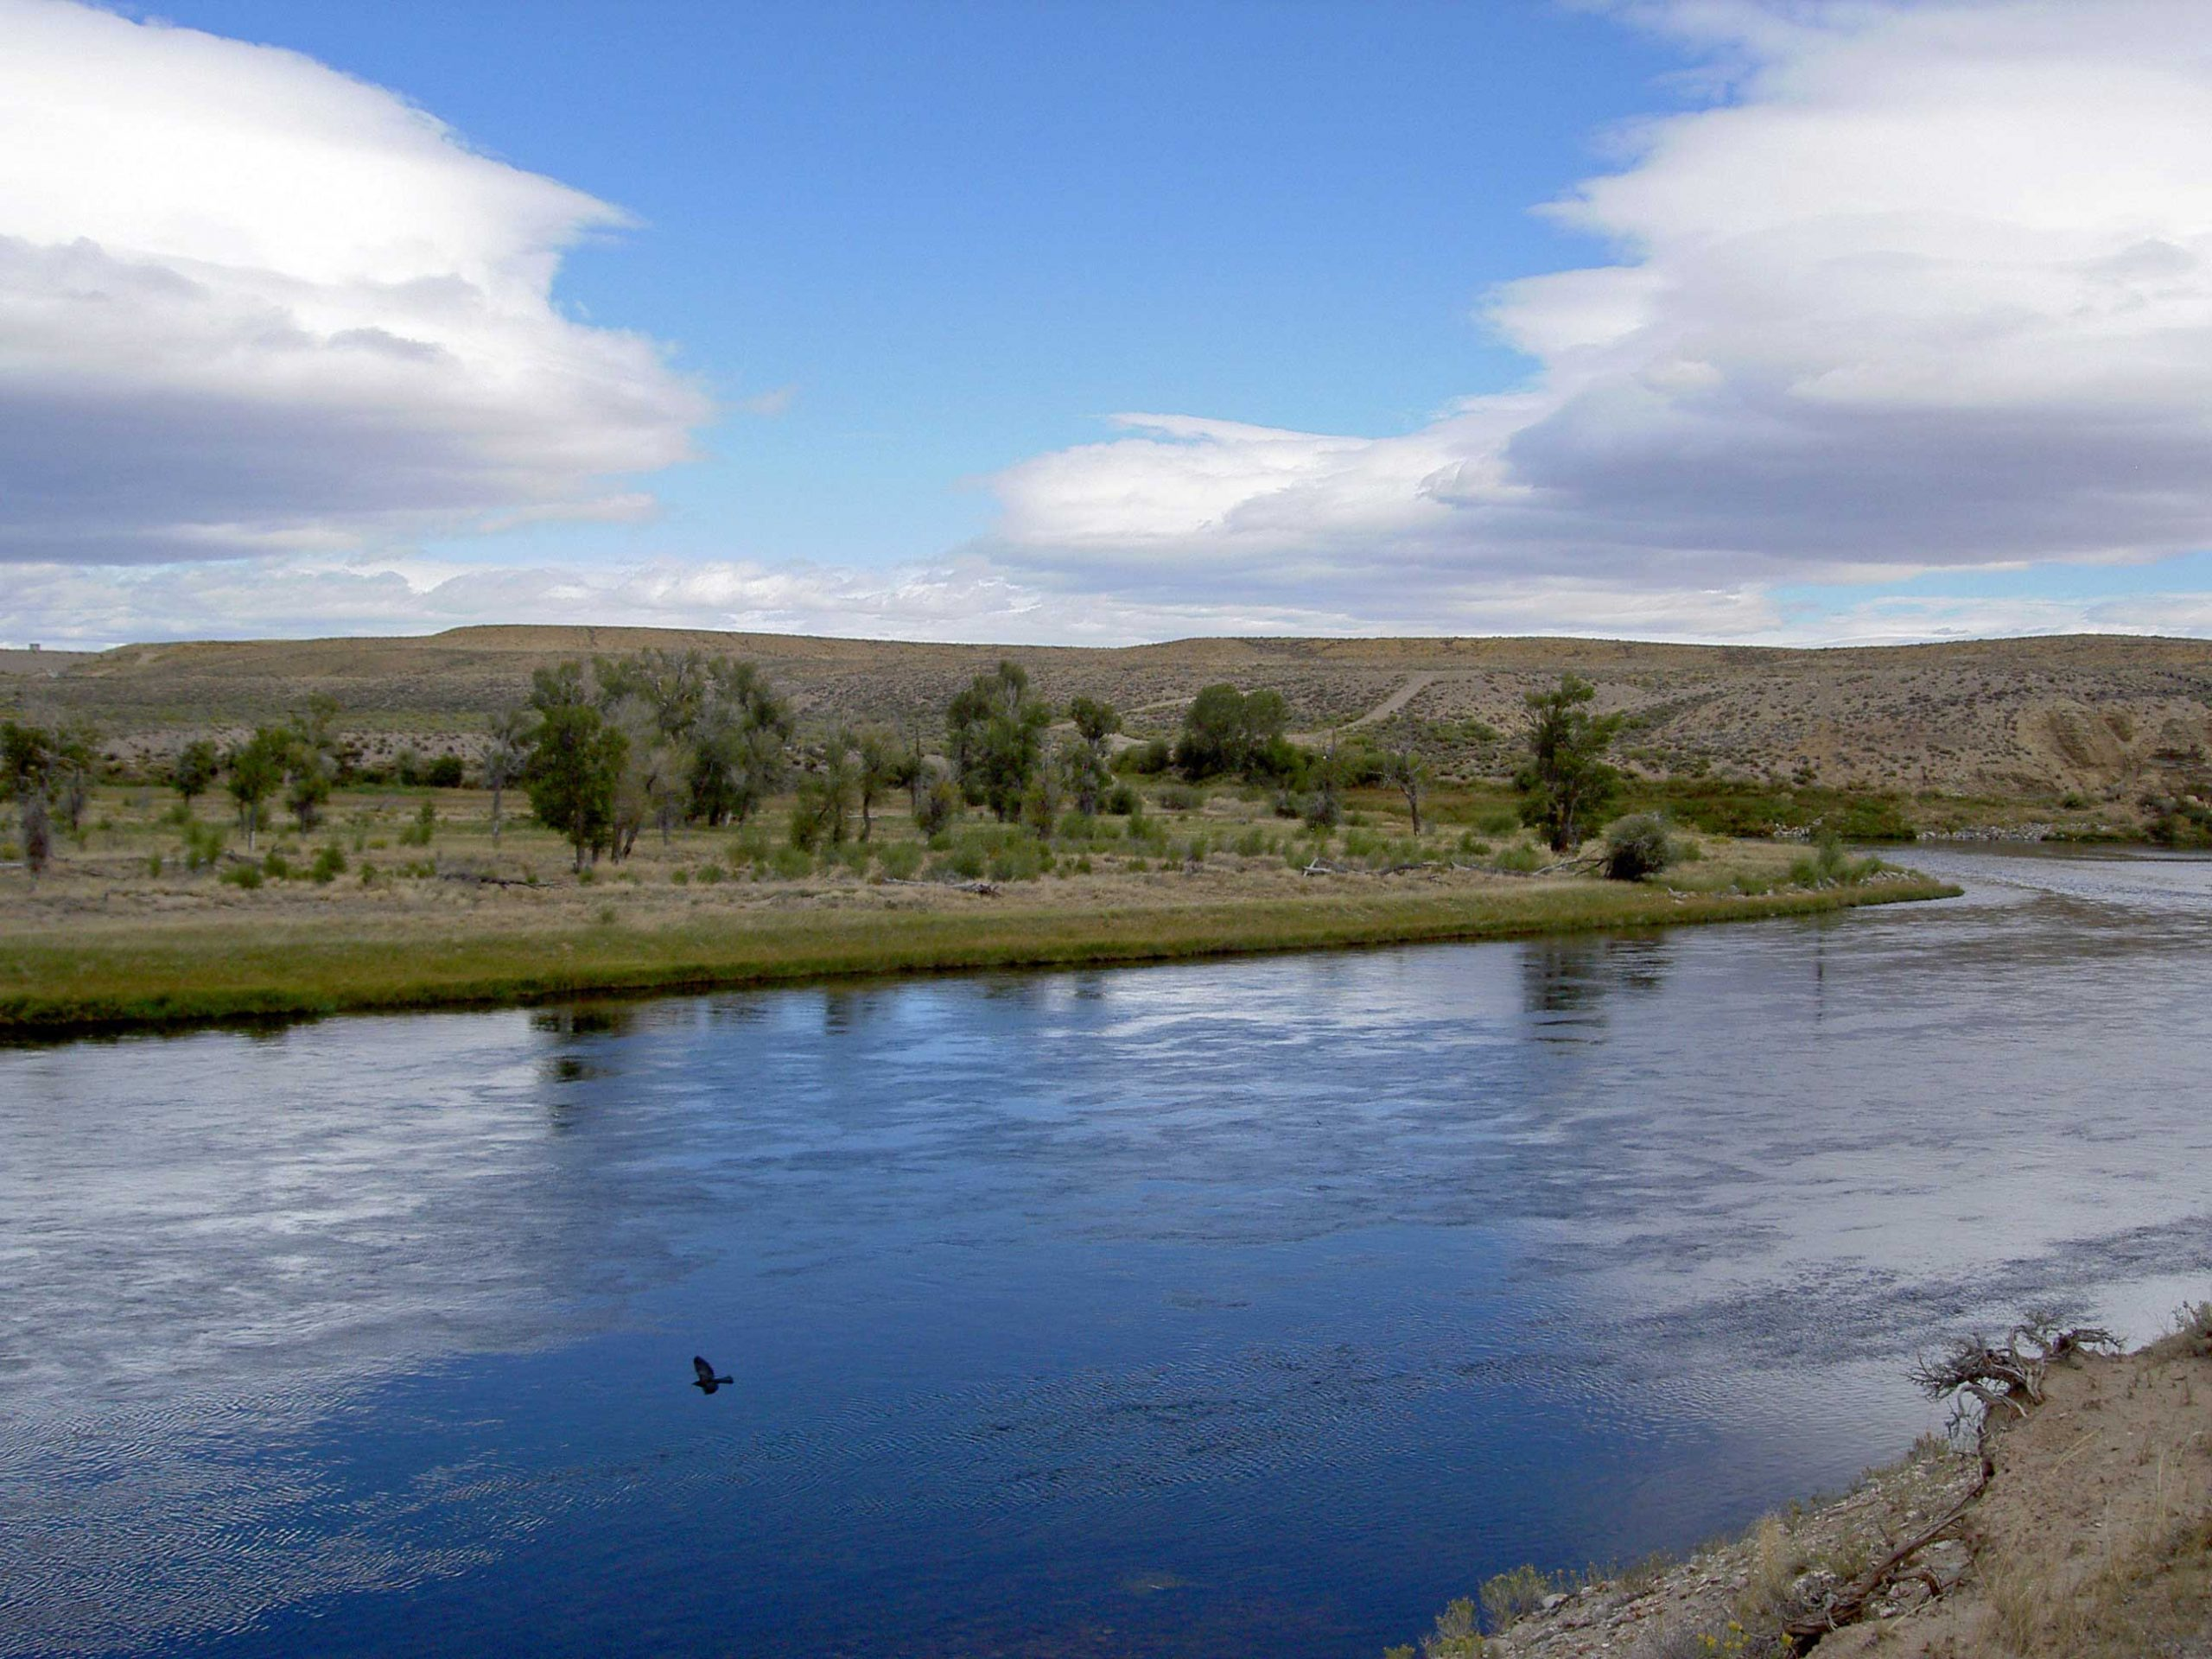 Crossing the Green River in Wyoming